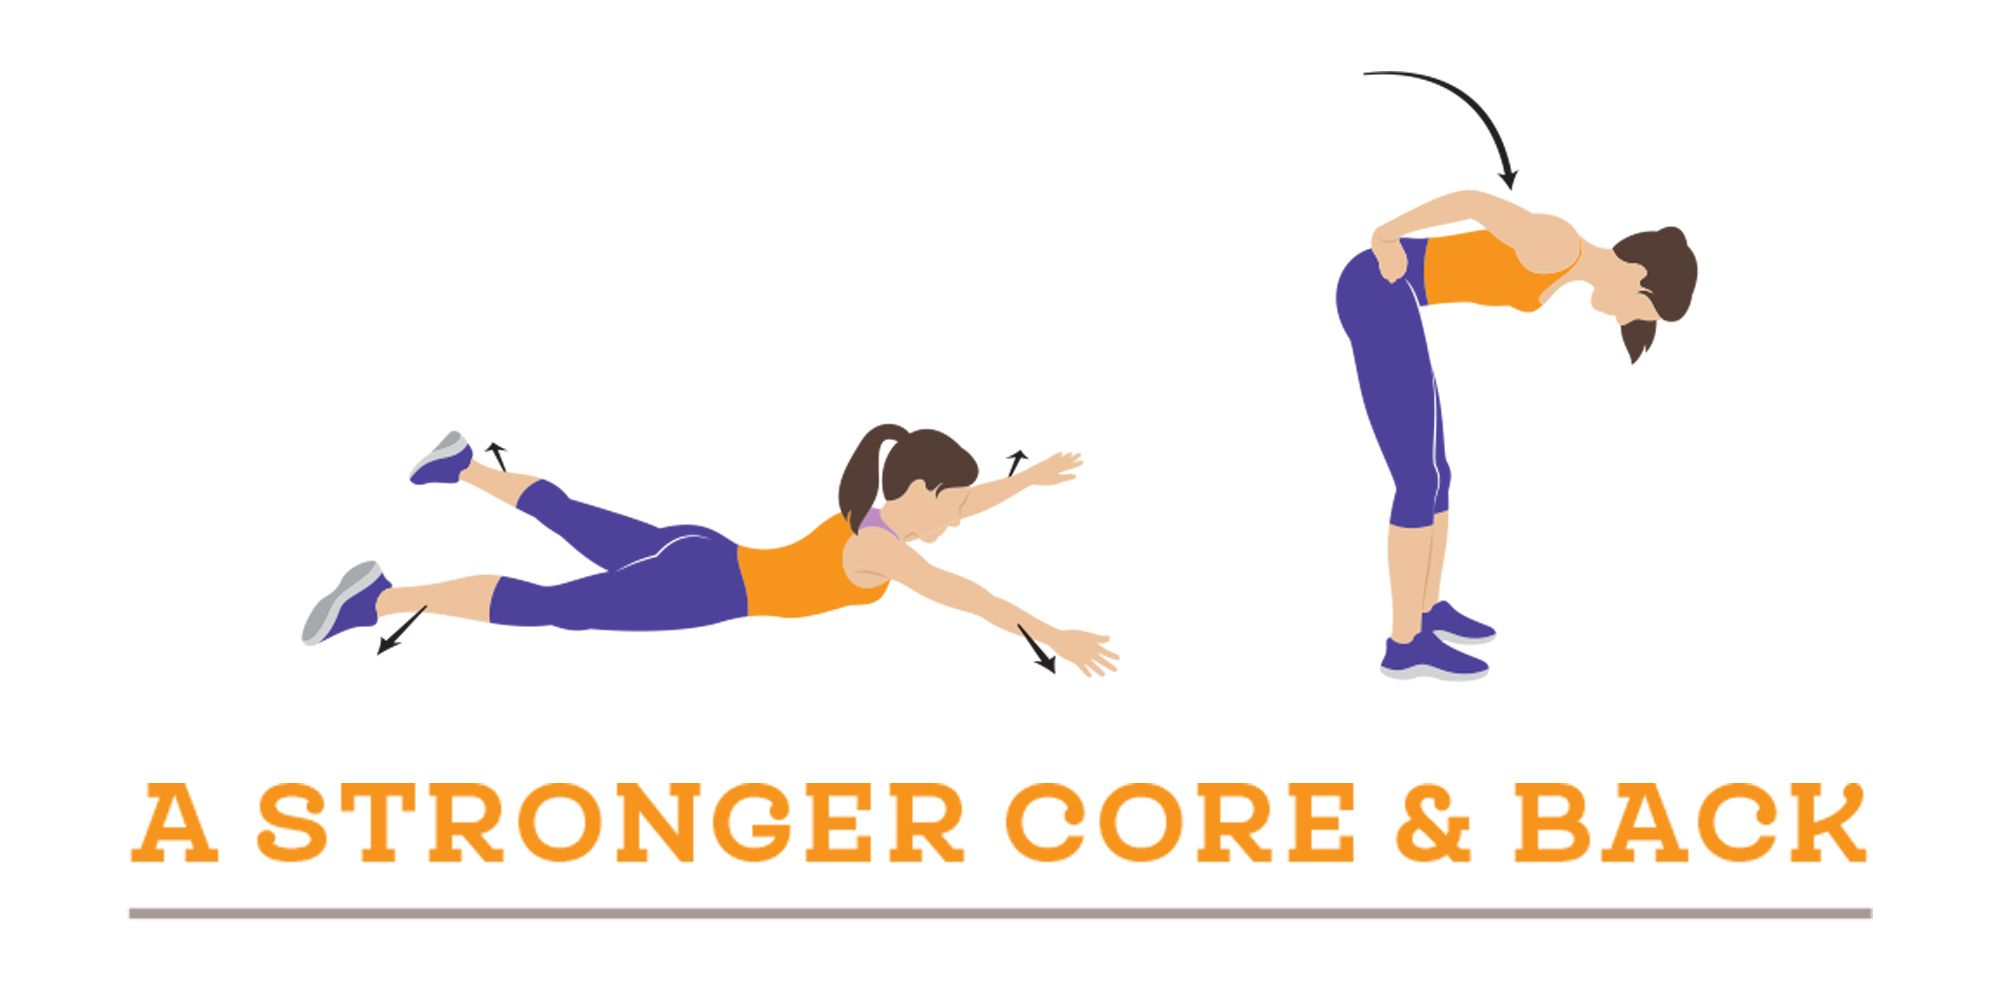 core workout move